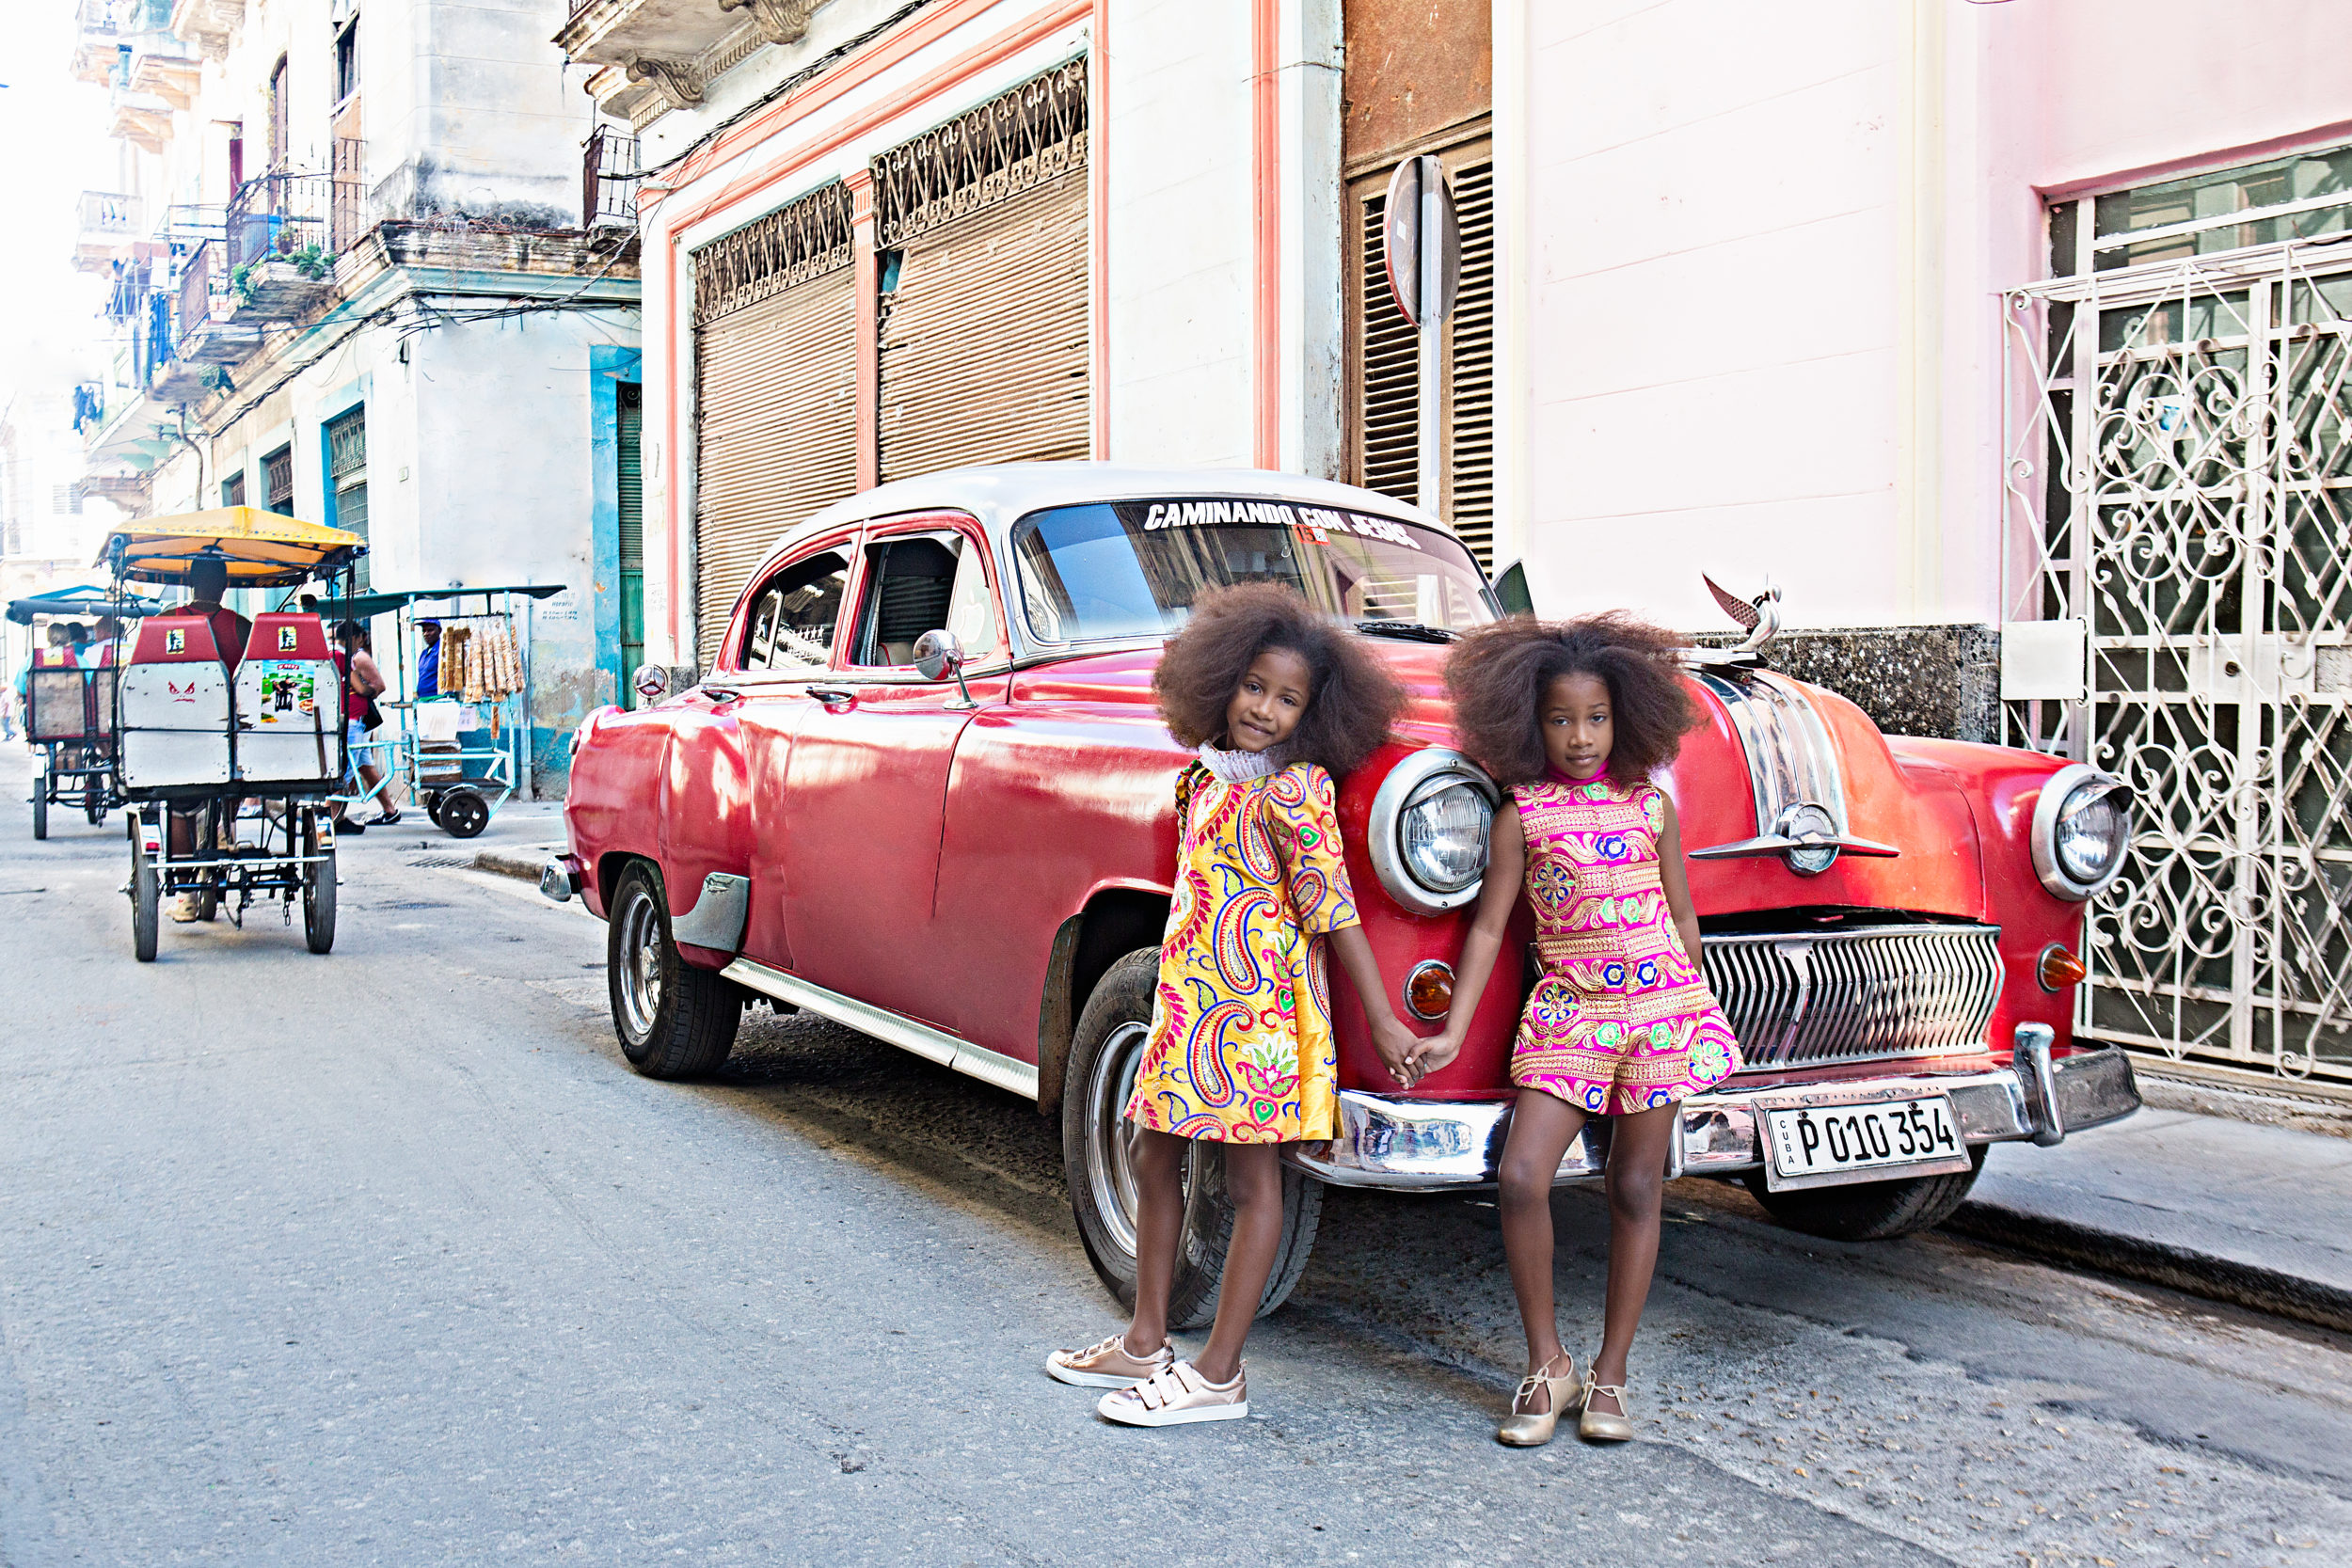 Copy of Cuba17-4067-Edit